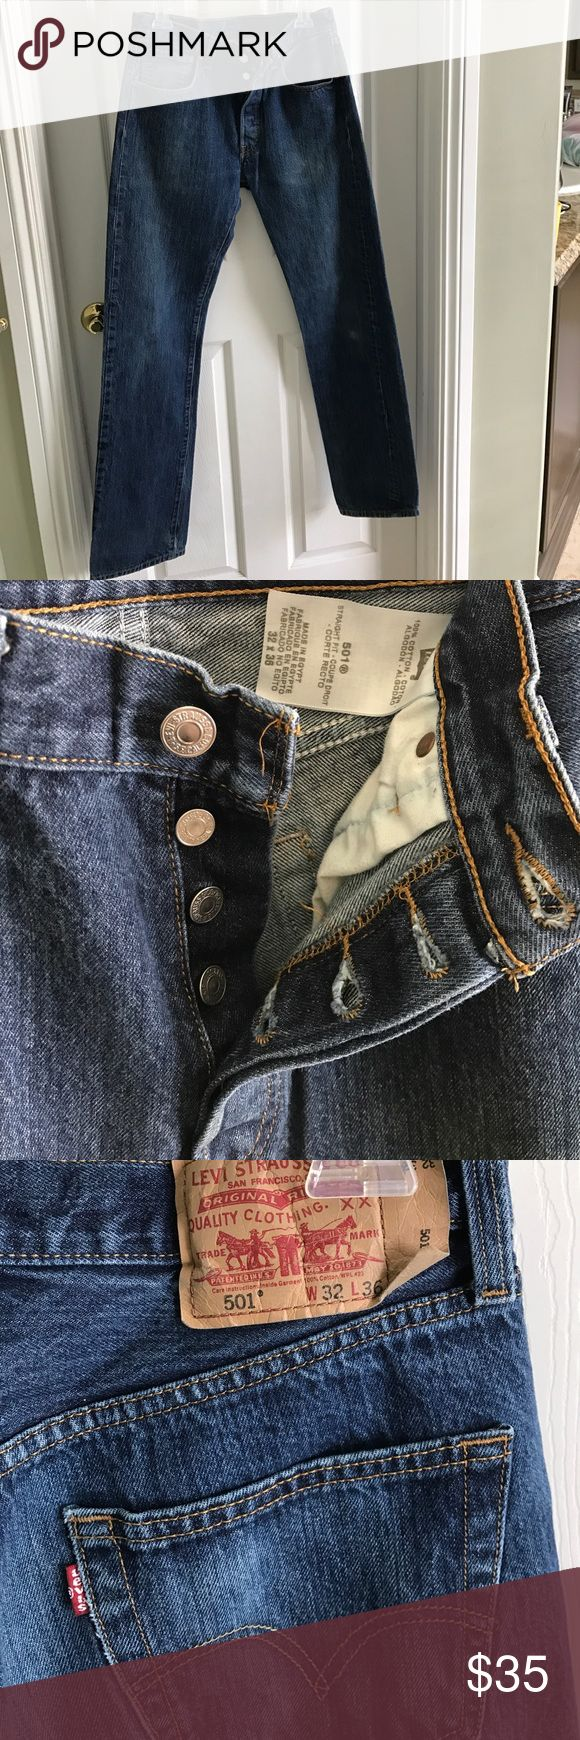 Authentic original Levi's Button Fly 501 Jeans These 501' straight legs button fly style are in amazing condition no rips, tears or shredding.  Size 32X36. These are the original heavy duty quality Vintage Levis Jeans Straight Leg